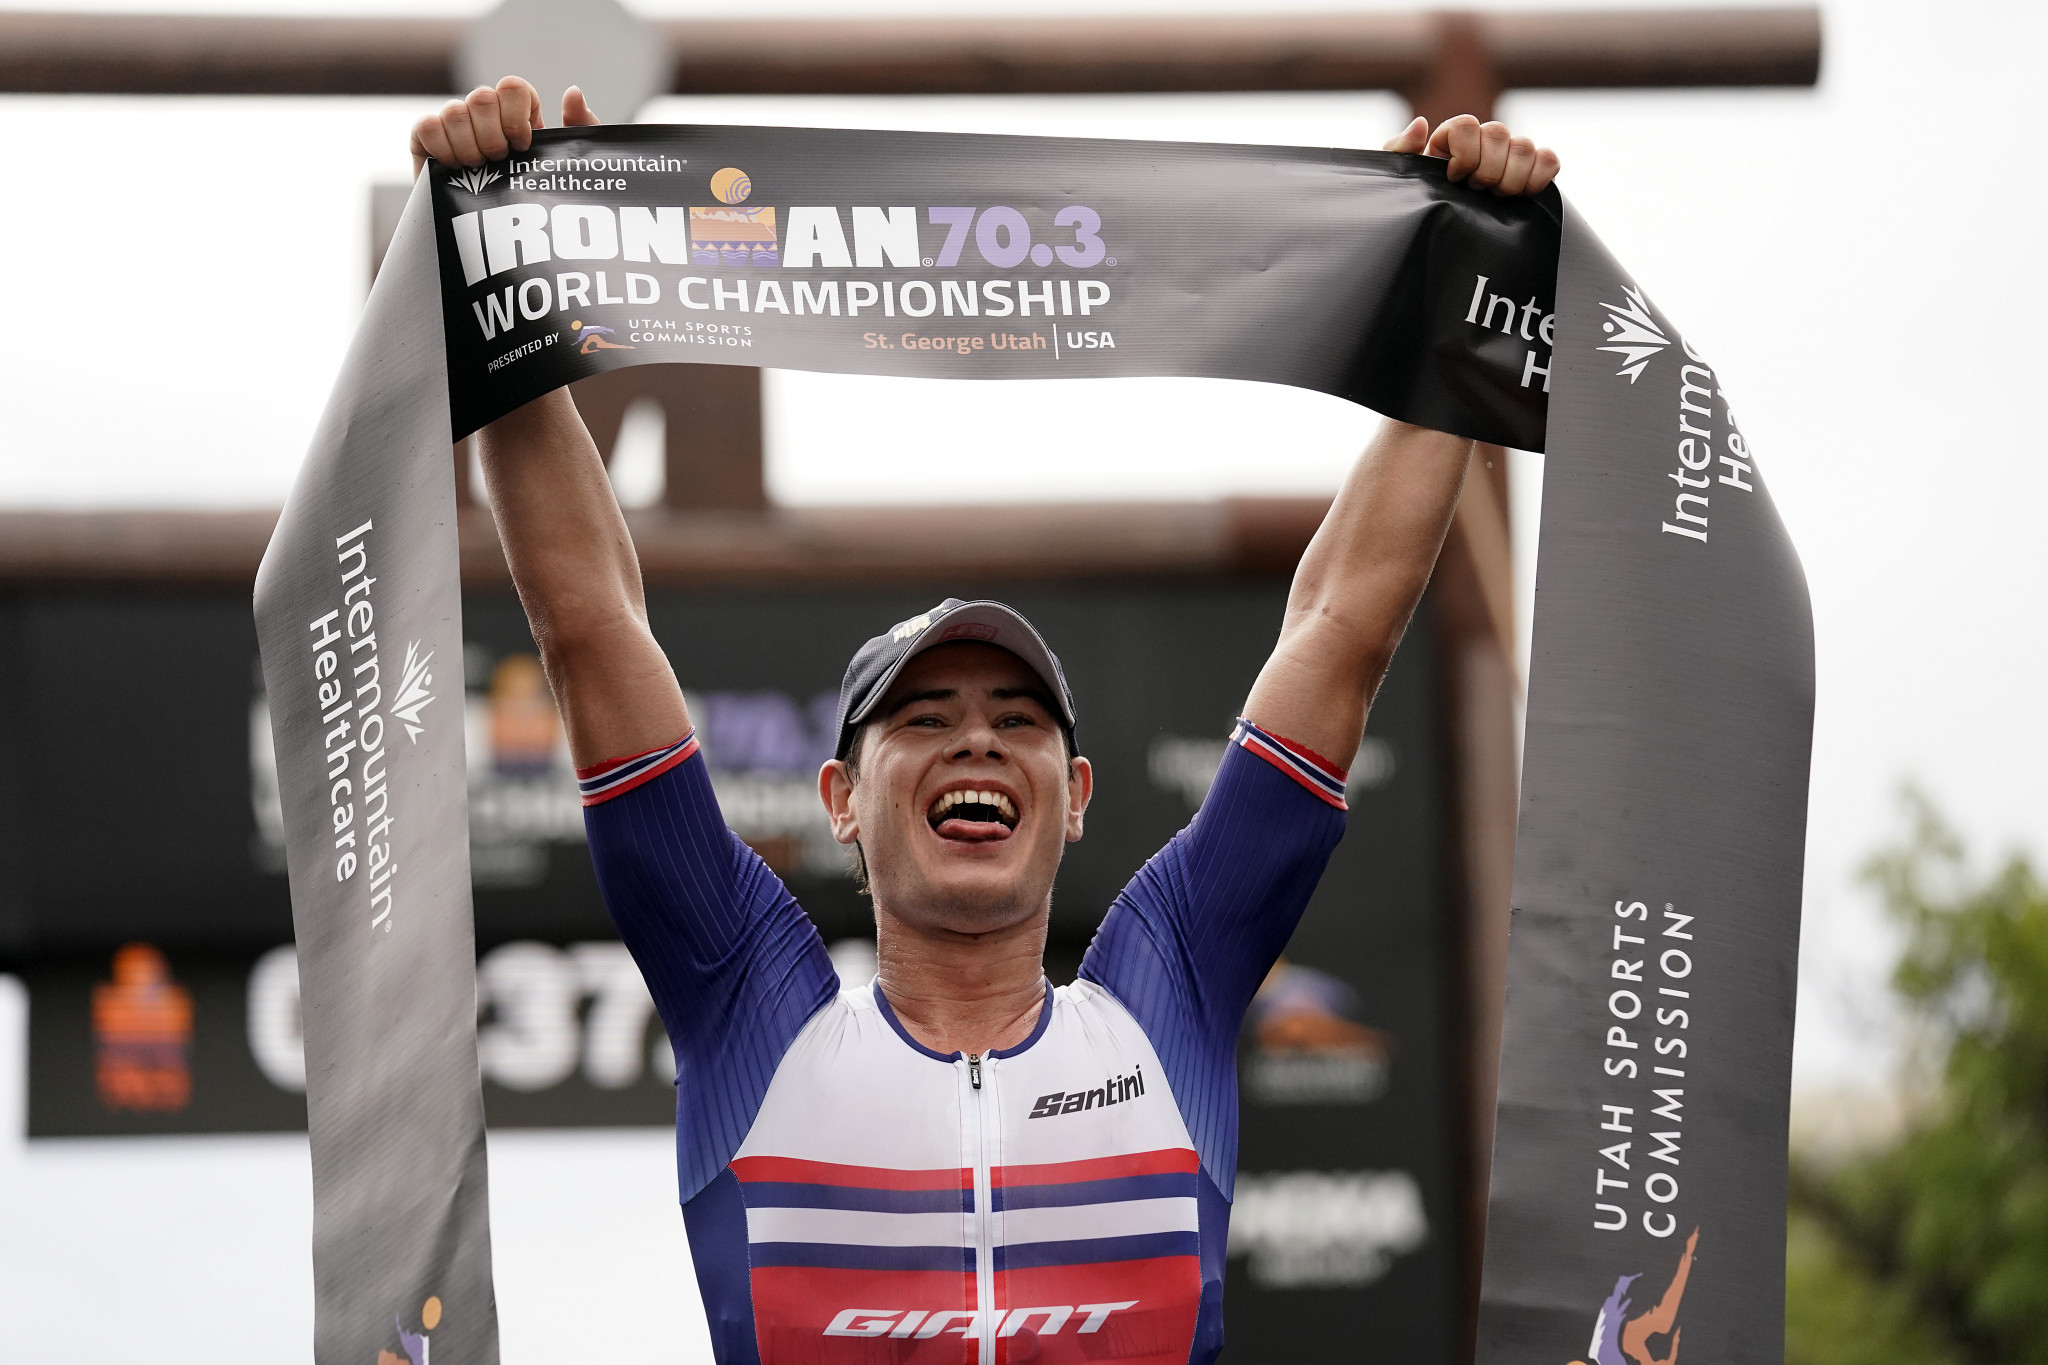 Iden defends men's Ironman World Championships 70.3 title while Charles-Barclay wins women's title